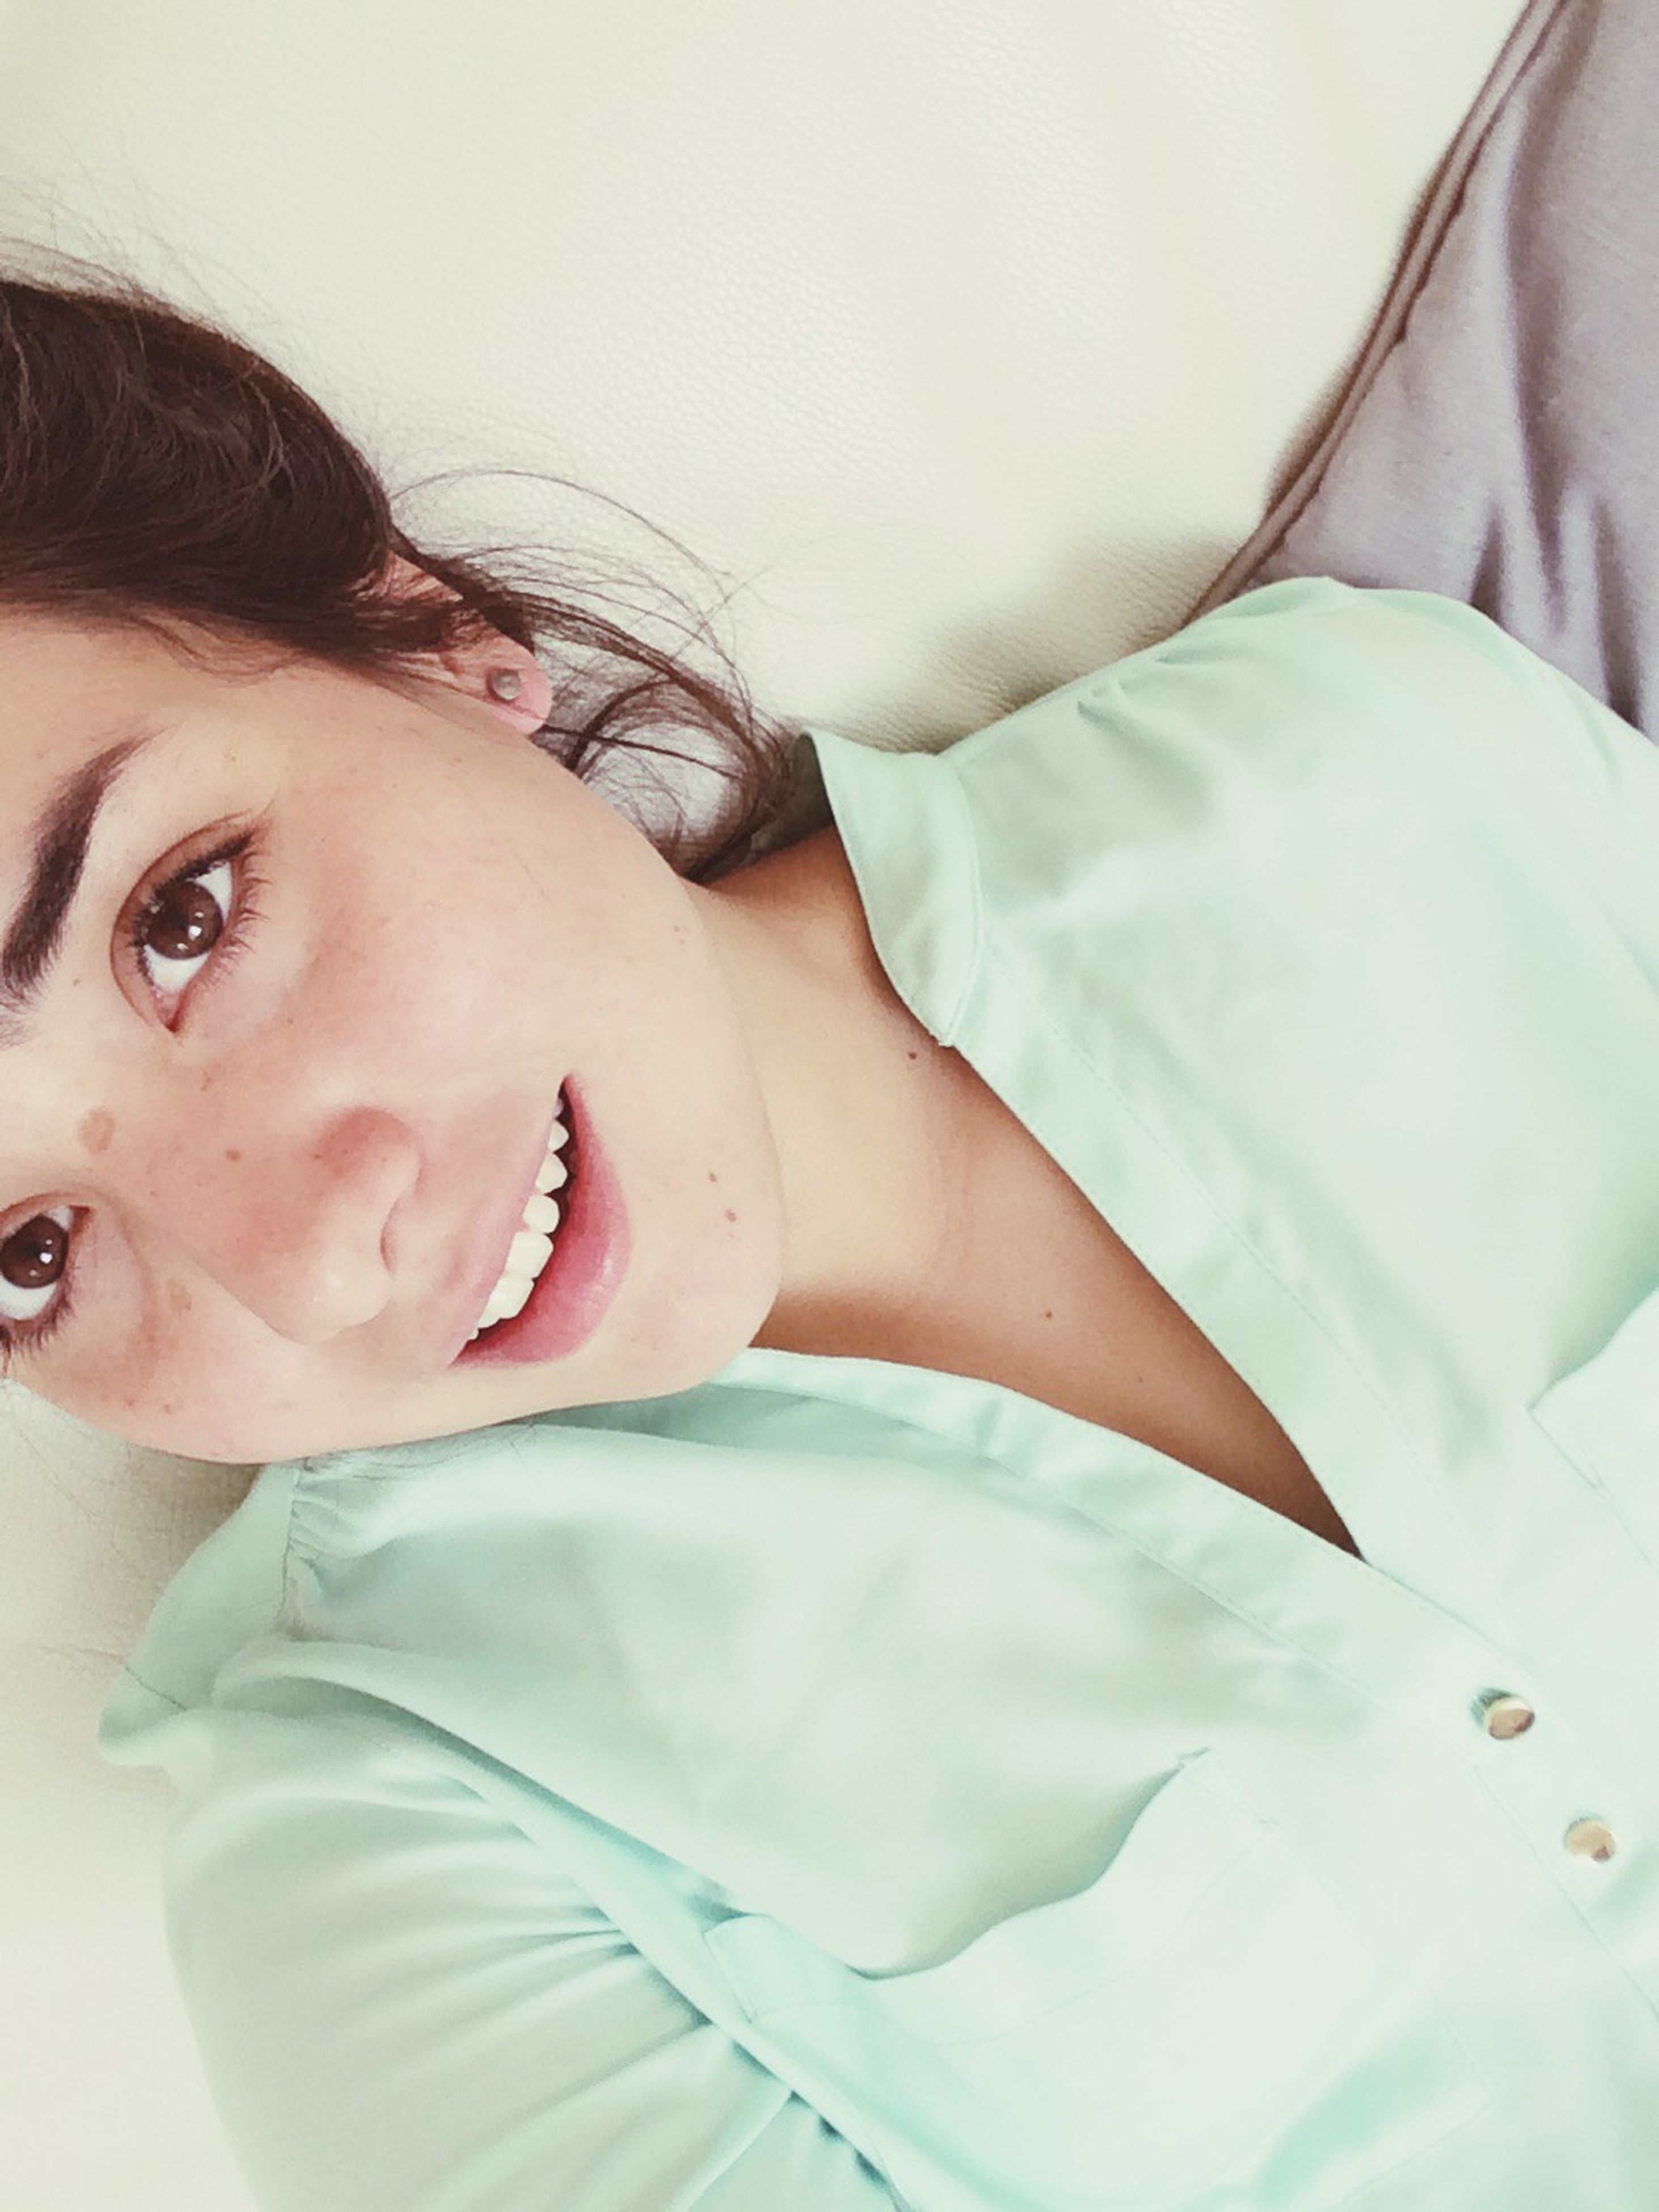 indoors, person, young adult, lifestyles, young women, bed, relaxation, leisure activity, home interior, headshot, front view, eyes closed, casual clothing, looking at camera, portrait, bedroom, lying down, close-up